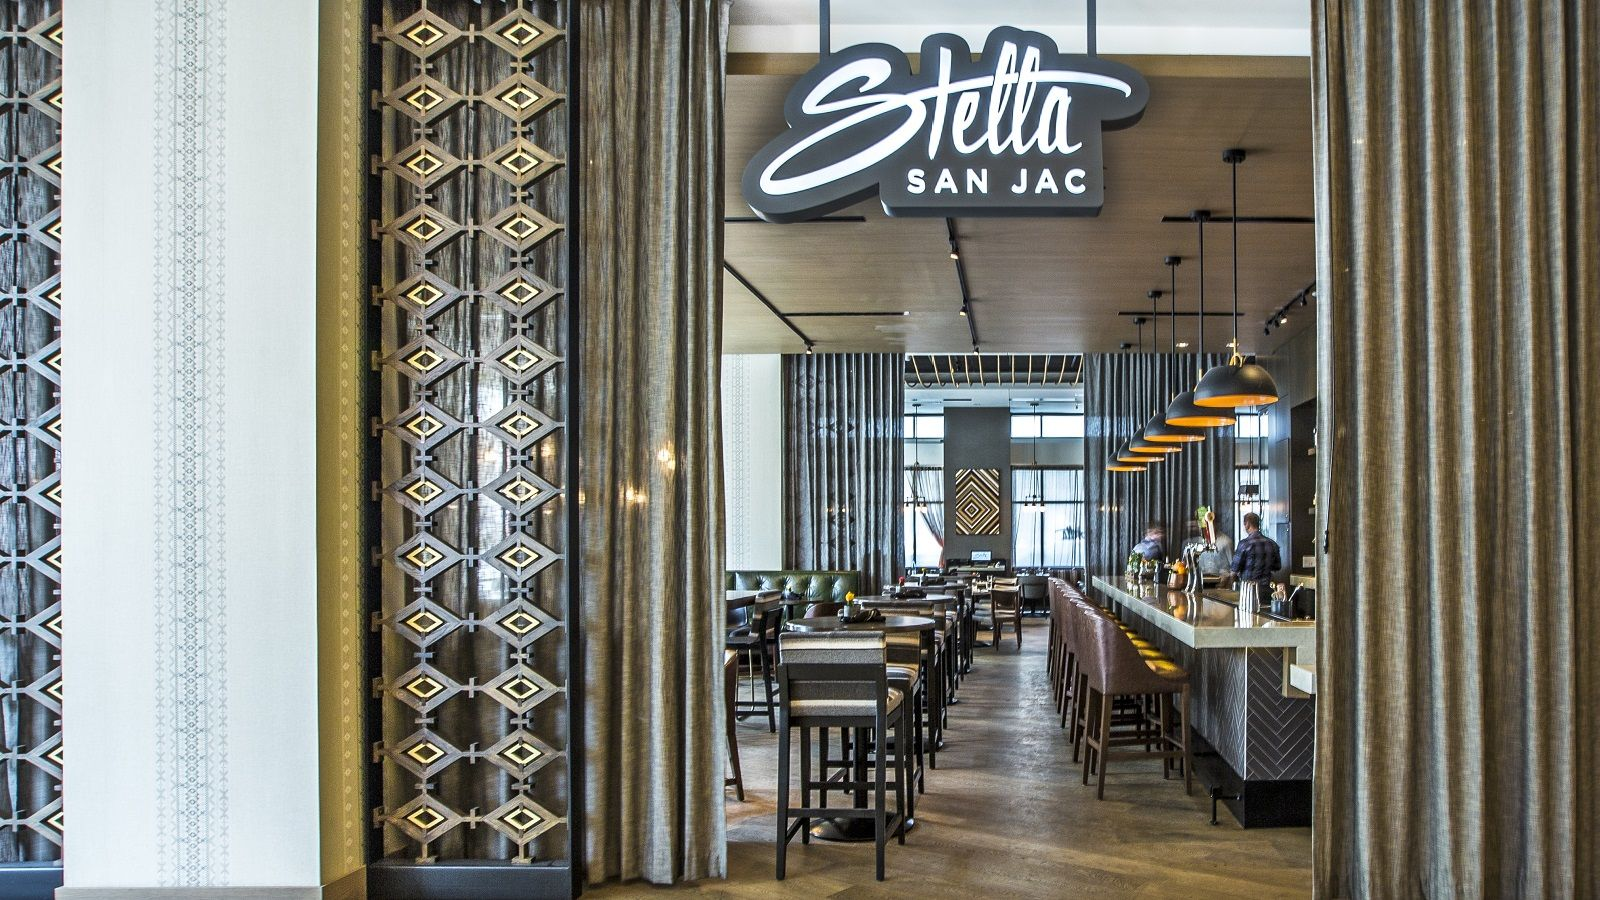 Downtown Austin Restaurants - Stella San Jac Dining Room